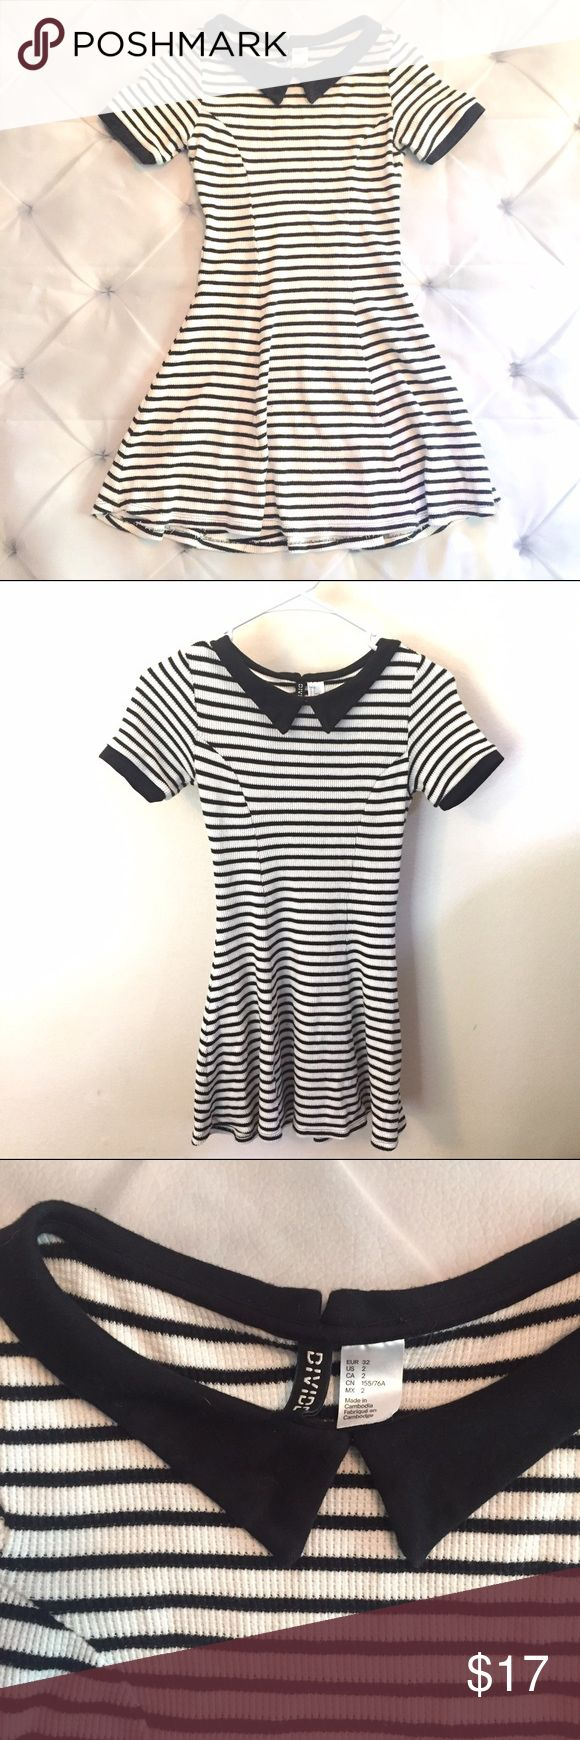 H&M striped mini dress Adorable mini dress. Ribbed material with collar detail.  EUC very comfortable and flattering cut H&M Dresses Mini